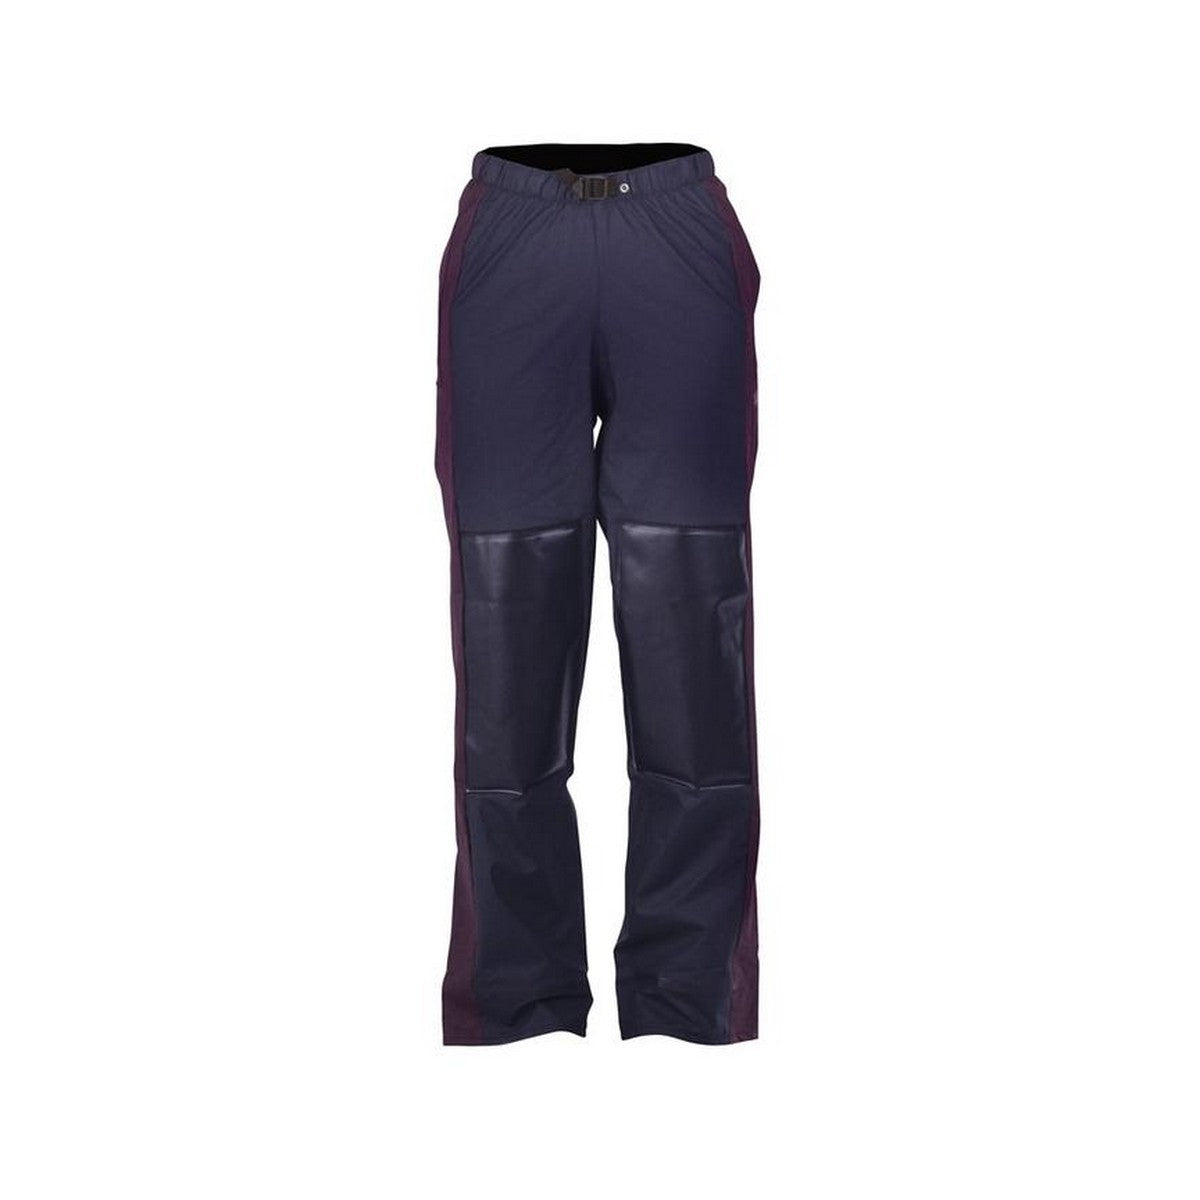 Image of Kaiwaka Sealtex Ladies Over Trousers